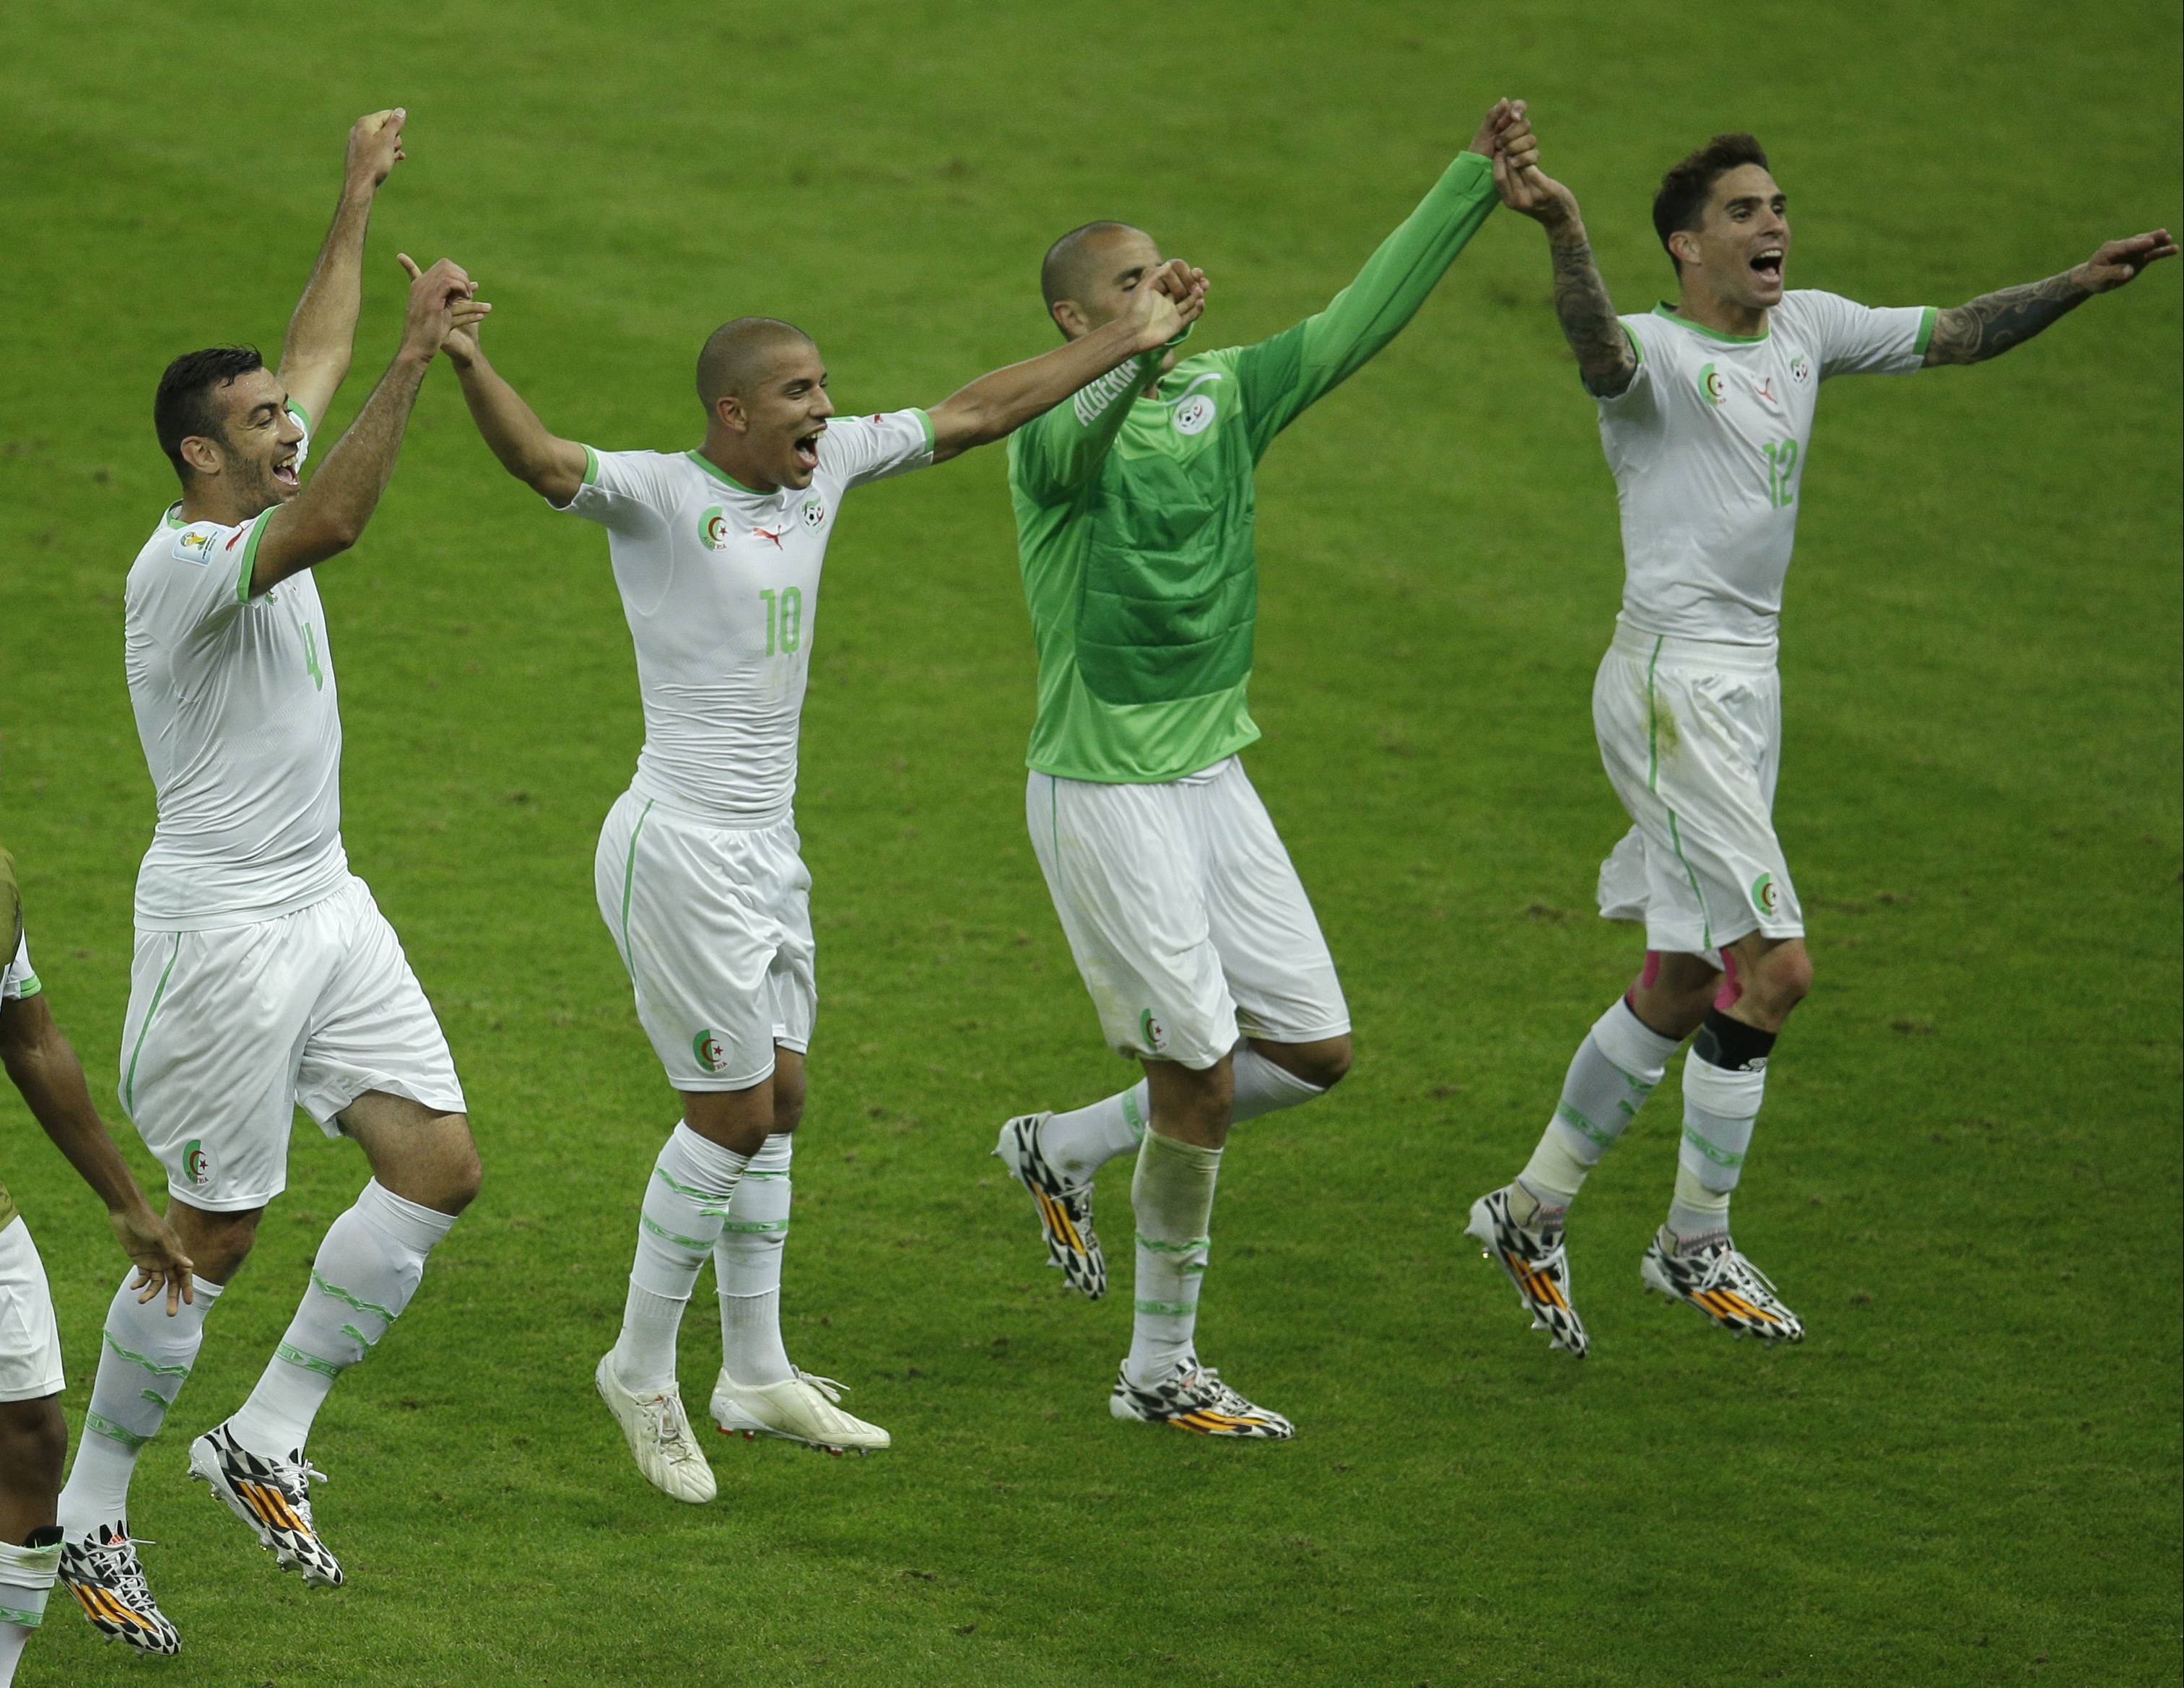 Members of the Algerian soccer team join hands as they celebrate after winning 4-2, the group H World Cup soccer match between South Korea and Algeria at the Estadio Beira-Rio in Porto Alegre, Brazil, Sunday, June 22, 2014.